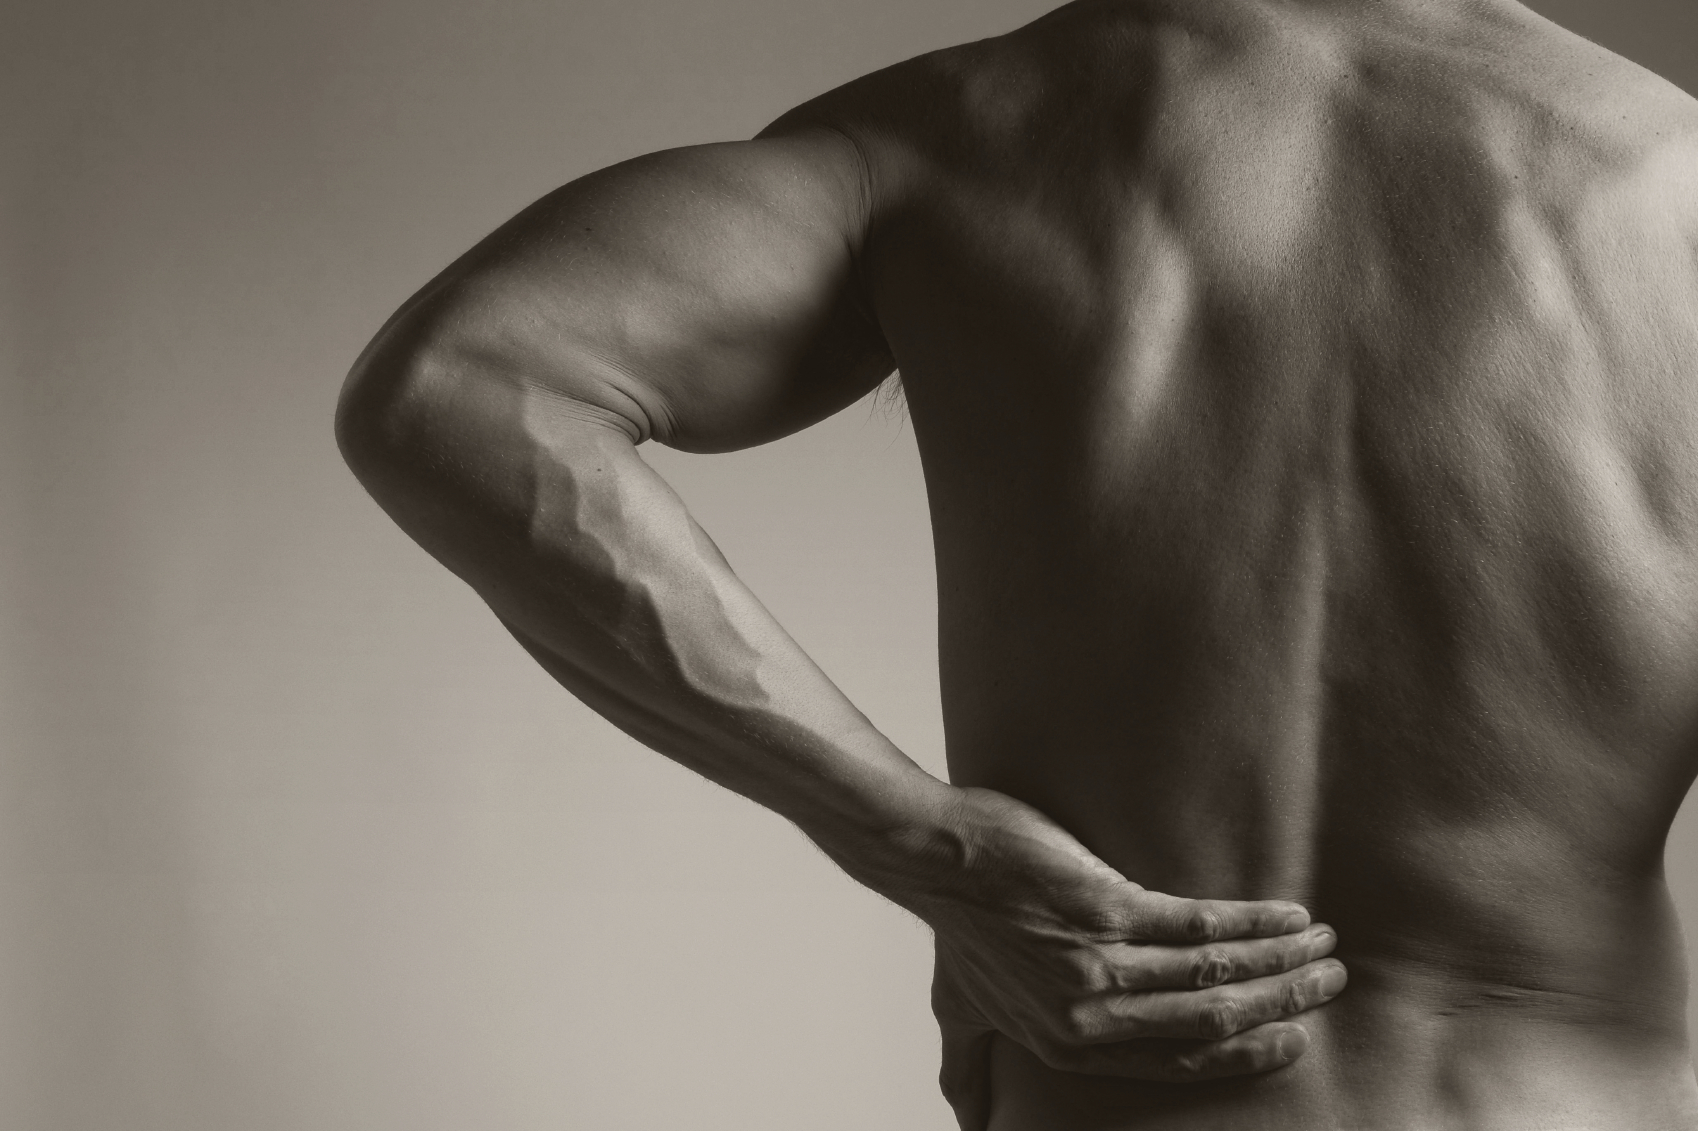 Natural Ways To Help Lower Back Pain